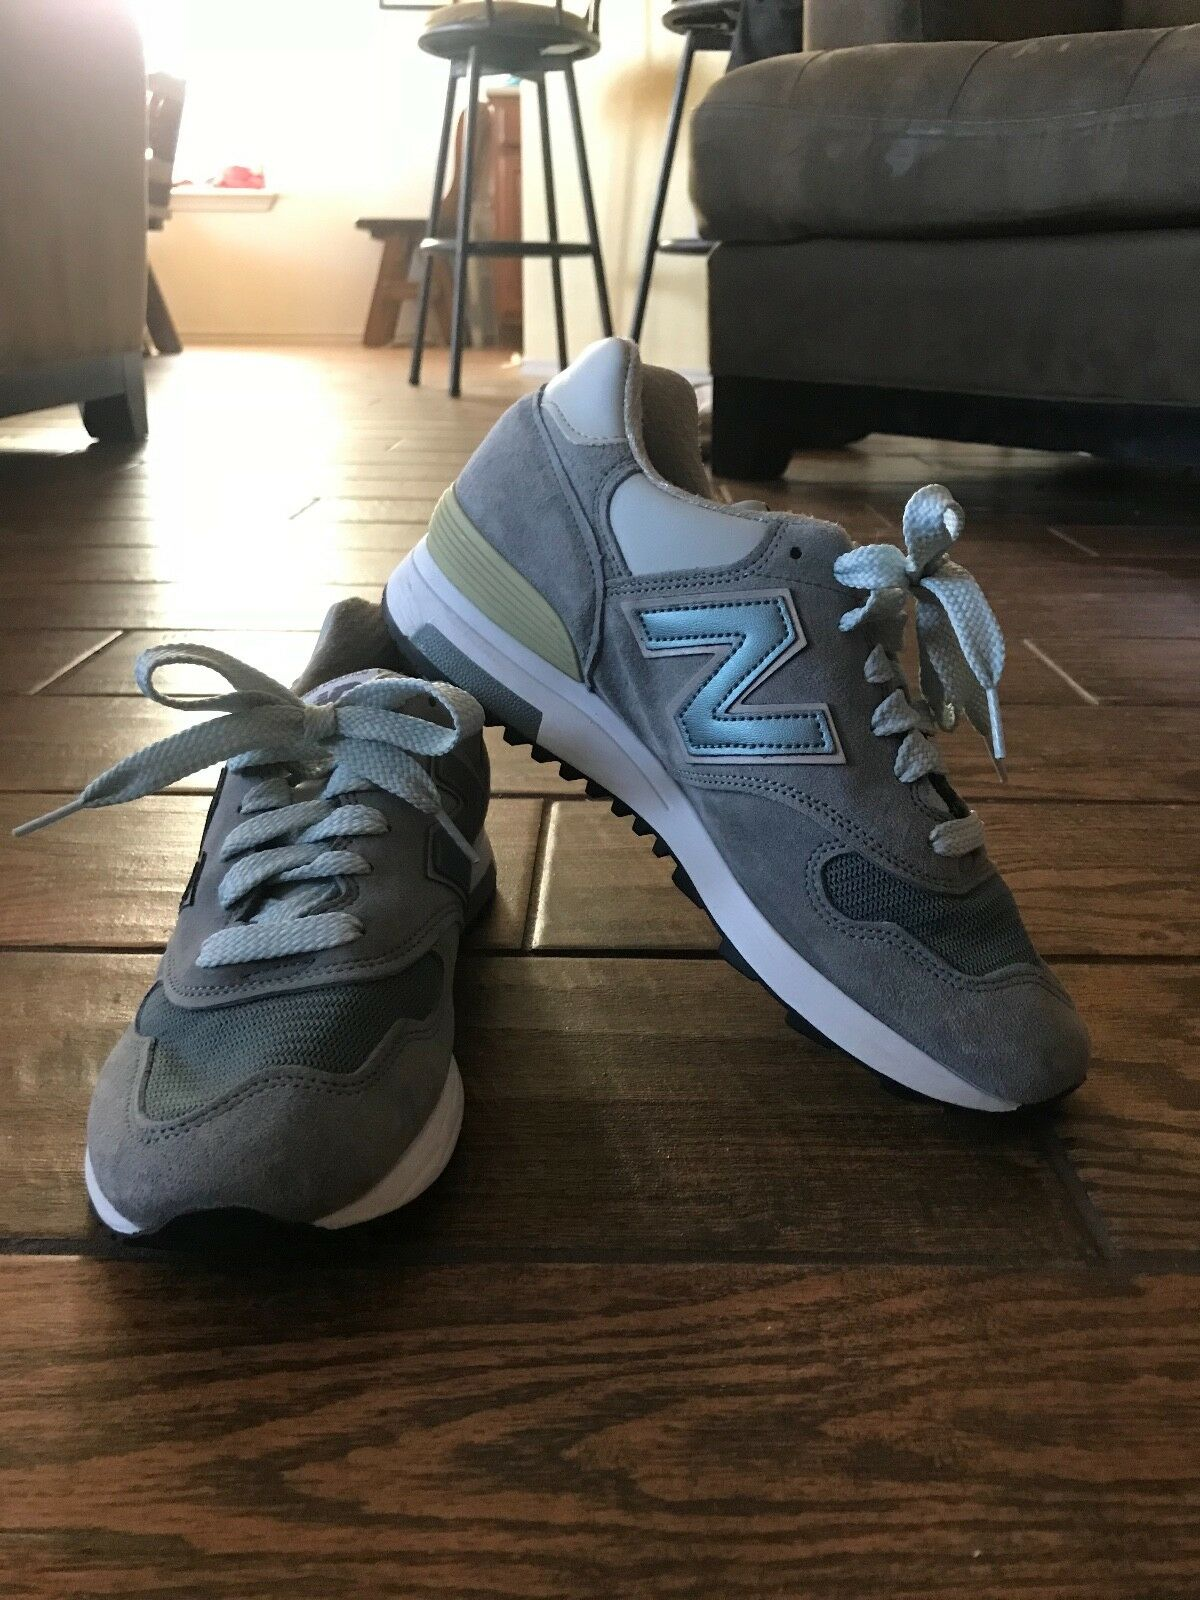 New Balance 1400 Real Suede shoes- Men's Size 5 1 2, Women's Size 8  BRAND NEW